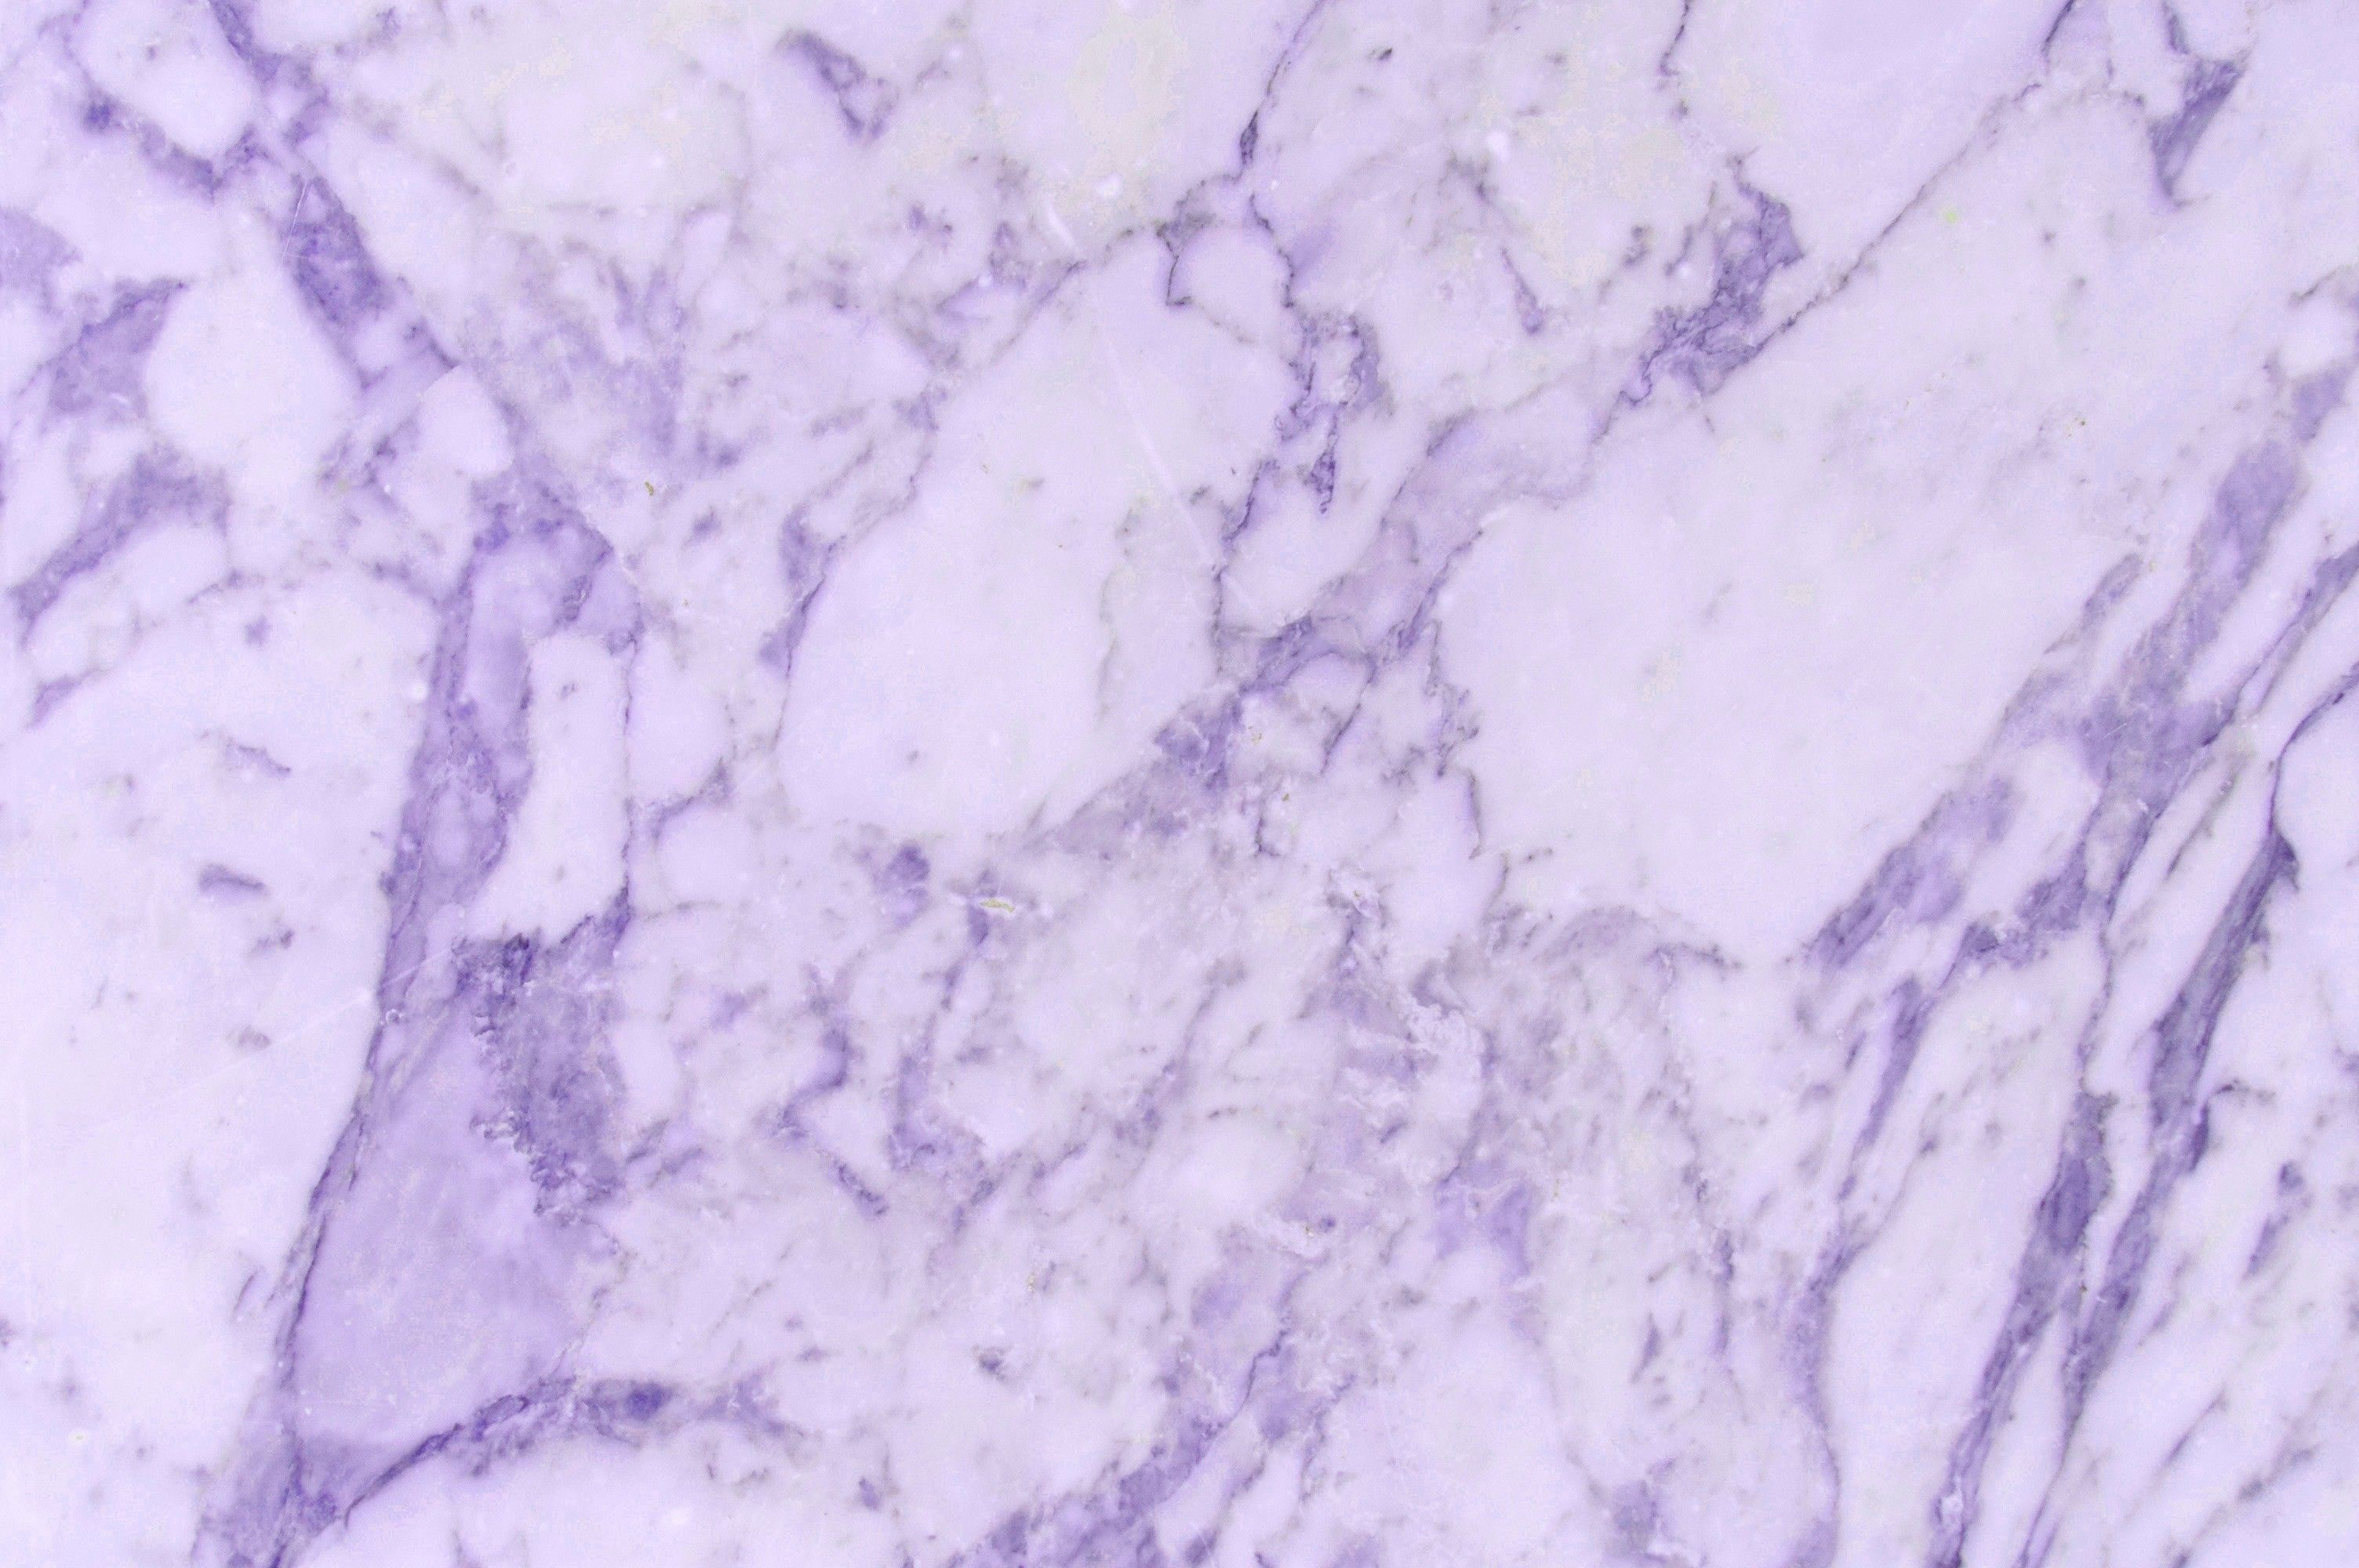 3008x2000 Beautiful Marble Wallpapers Purple marble